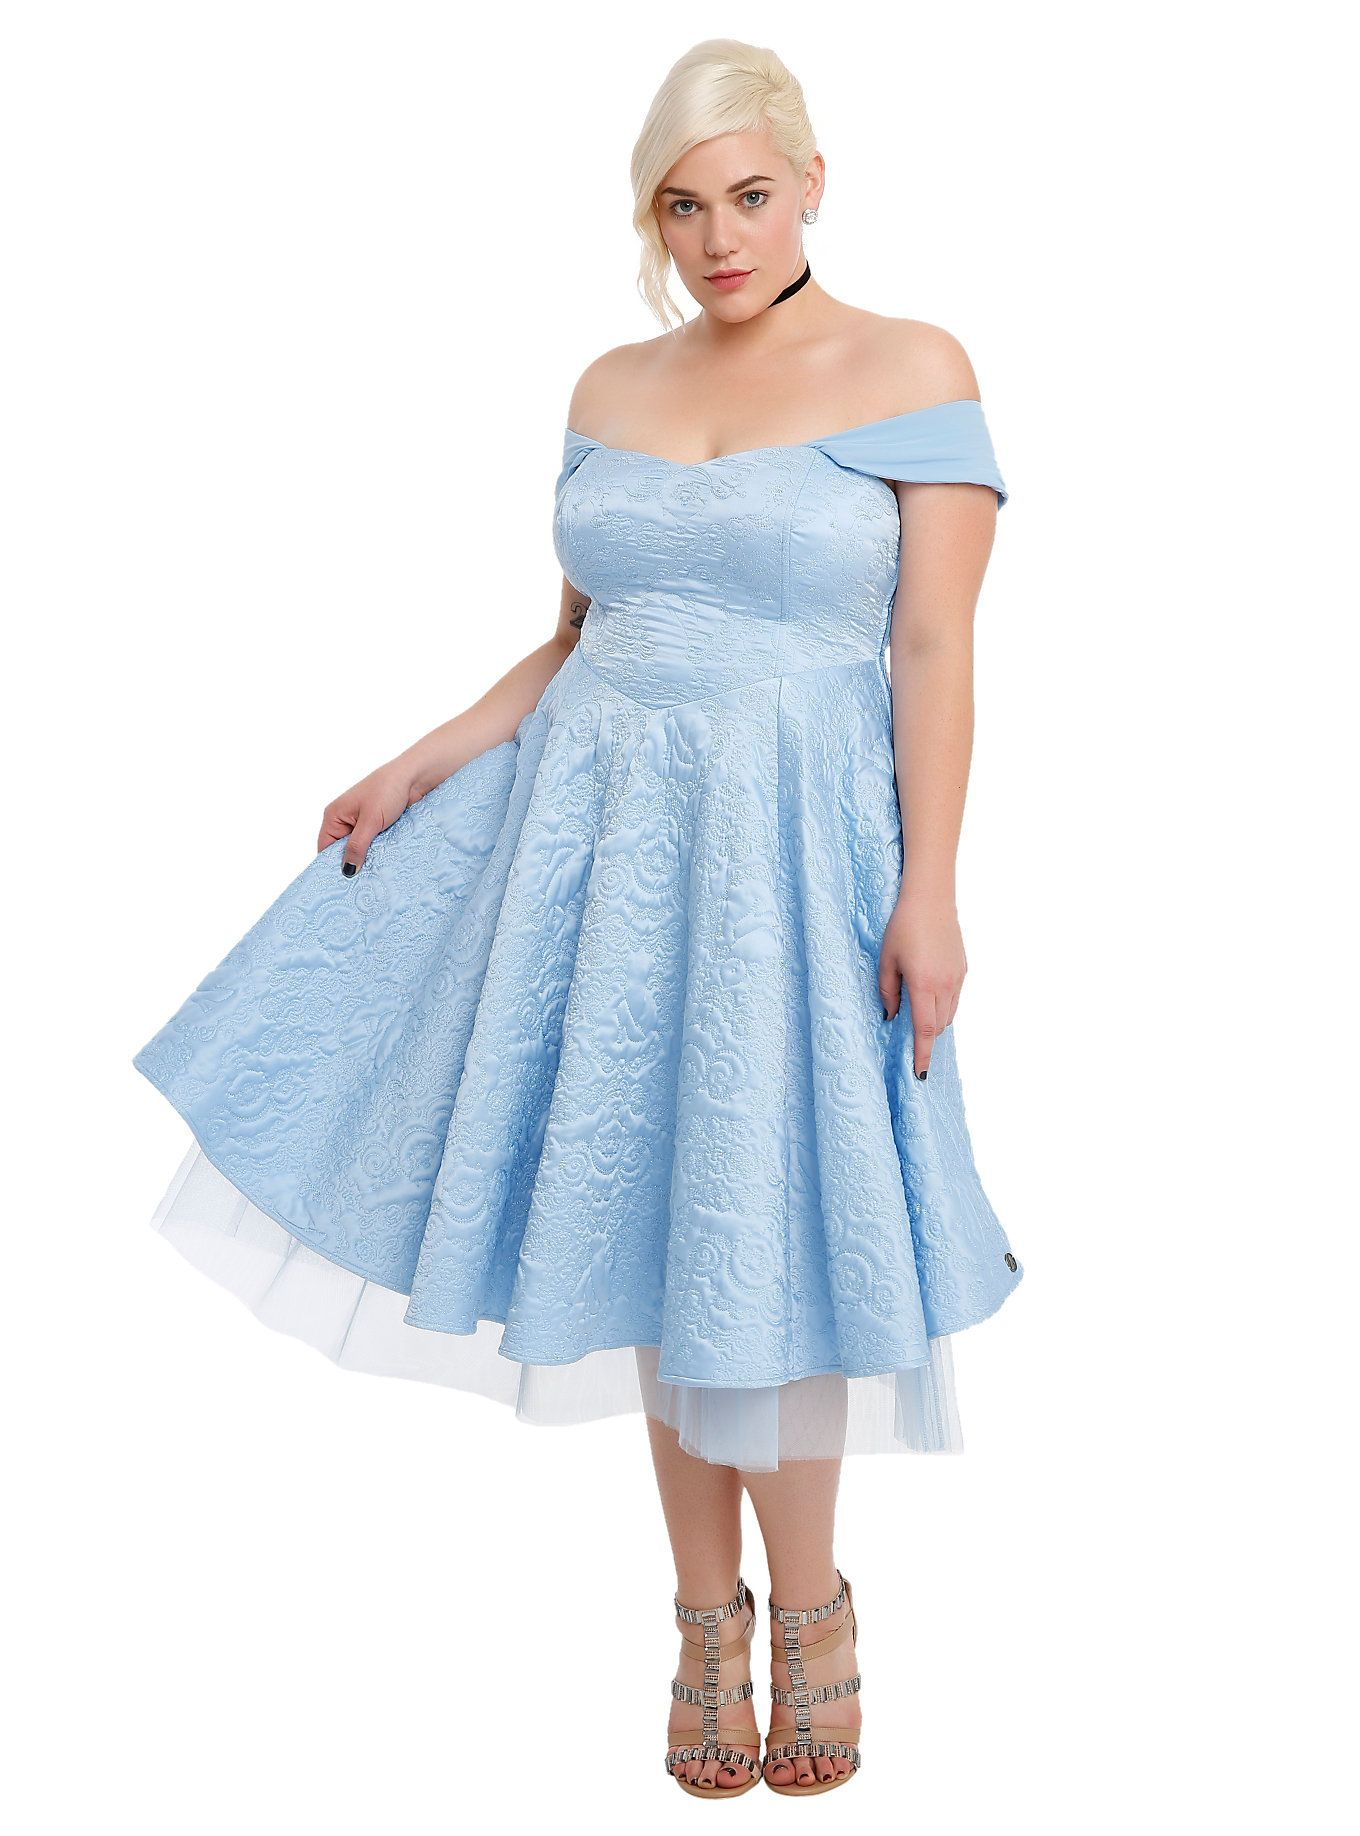 Disney Cinderella Corset Ball Gown Plus Size | Ball gowns, Circle ...